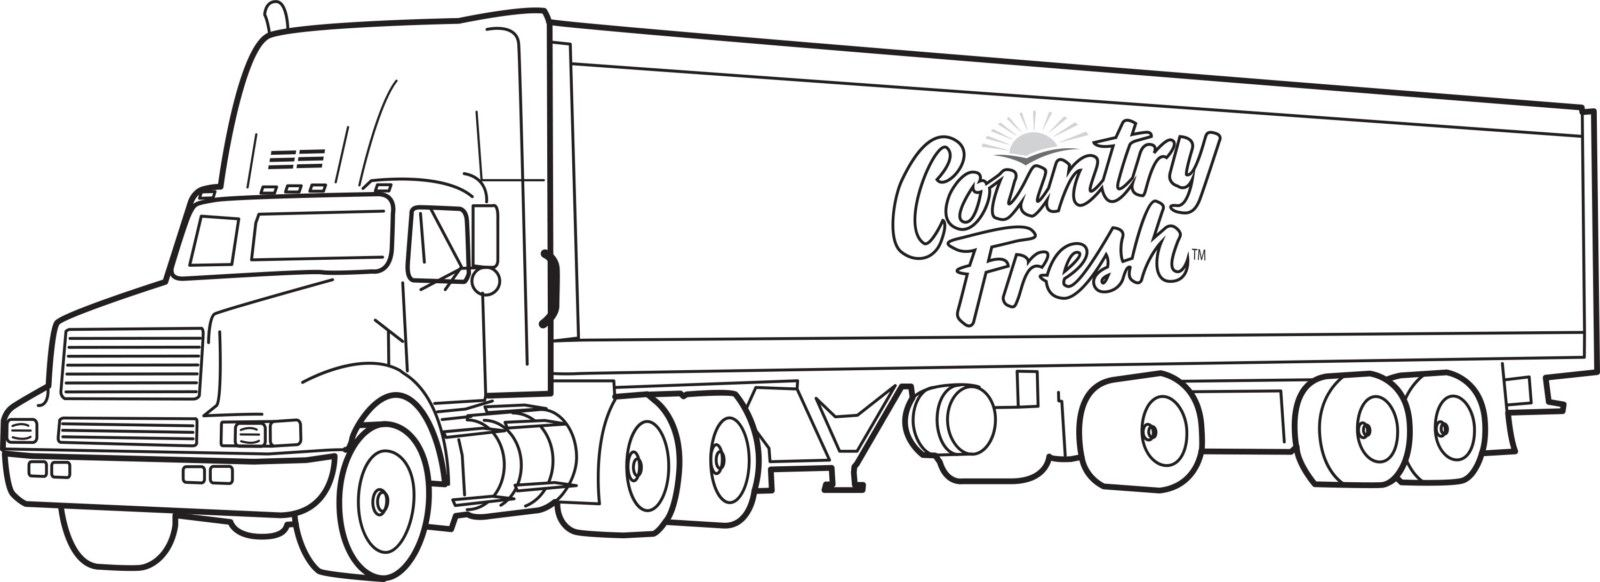 Coloring pictures of cars truck tractors - Http Colorings Co Semi Truck Coloring Pages